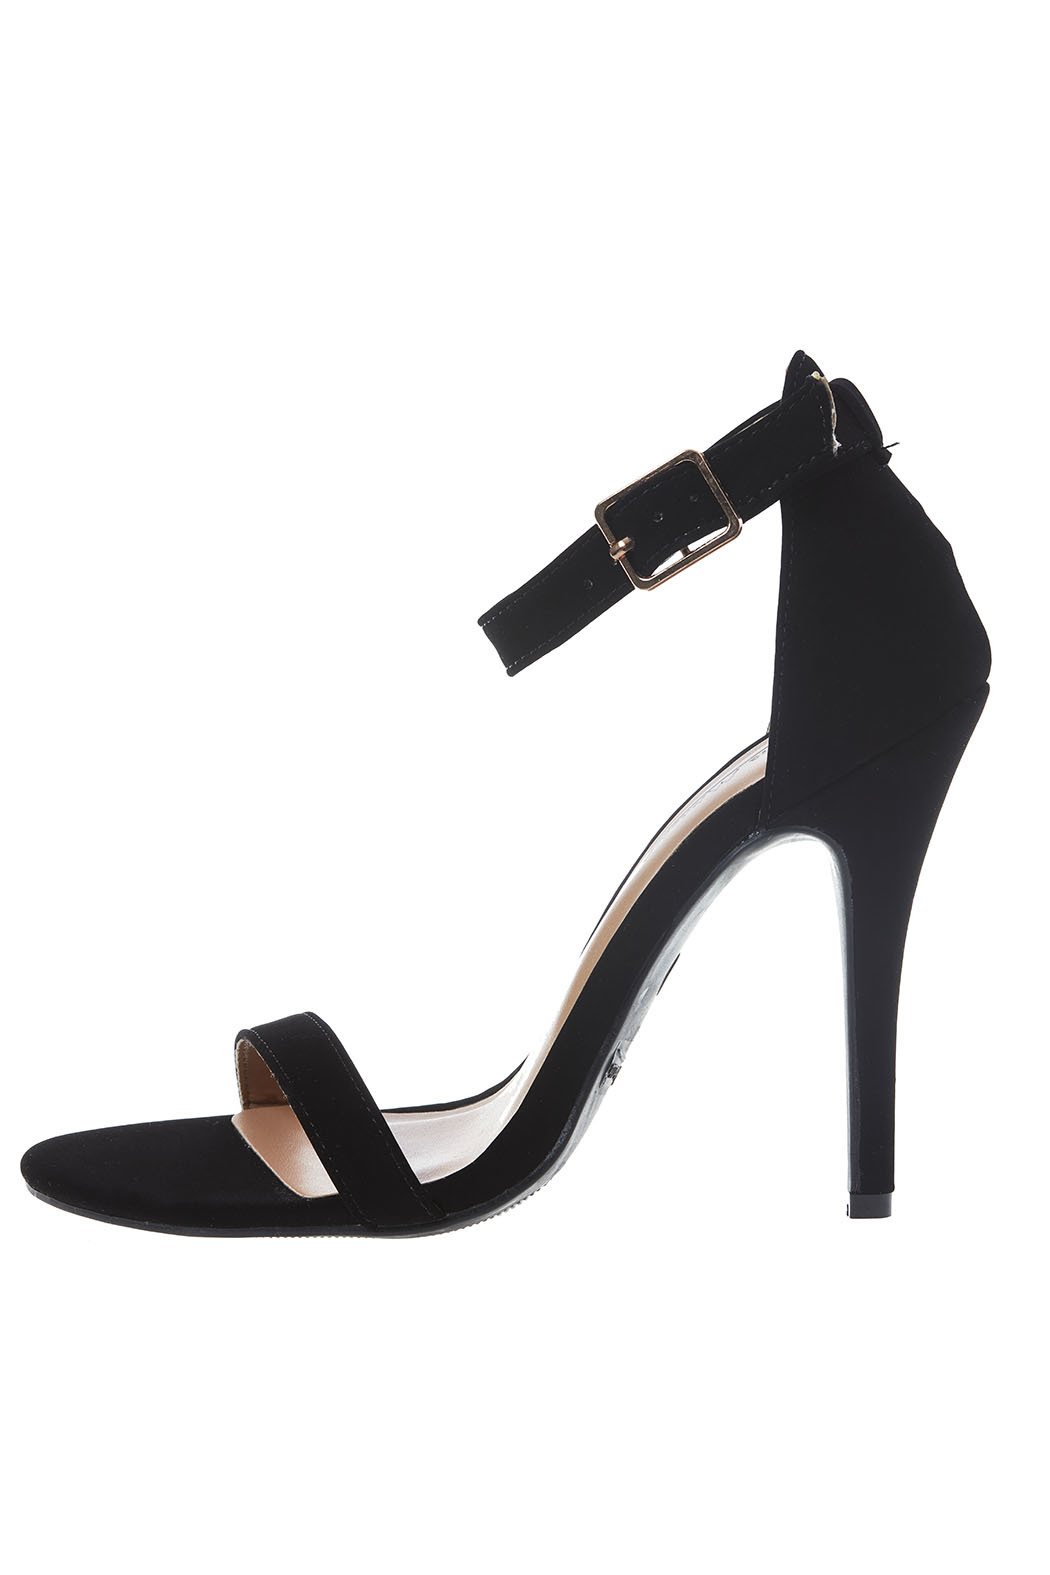 anne michelle Two Strap Heel - Front Cropped Image